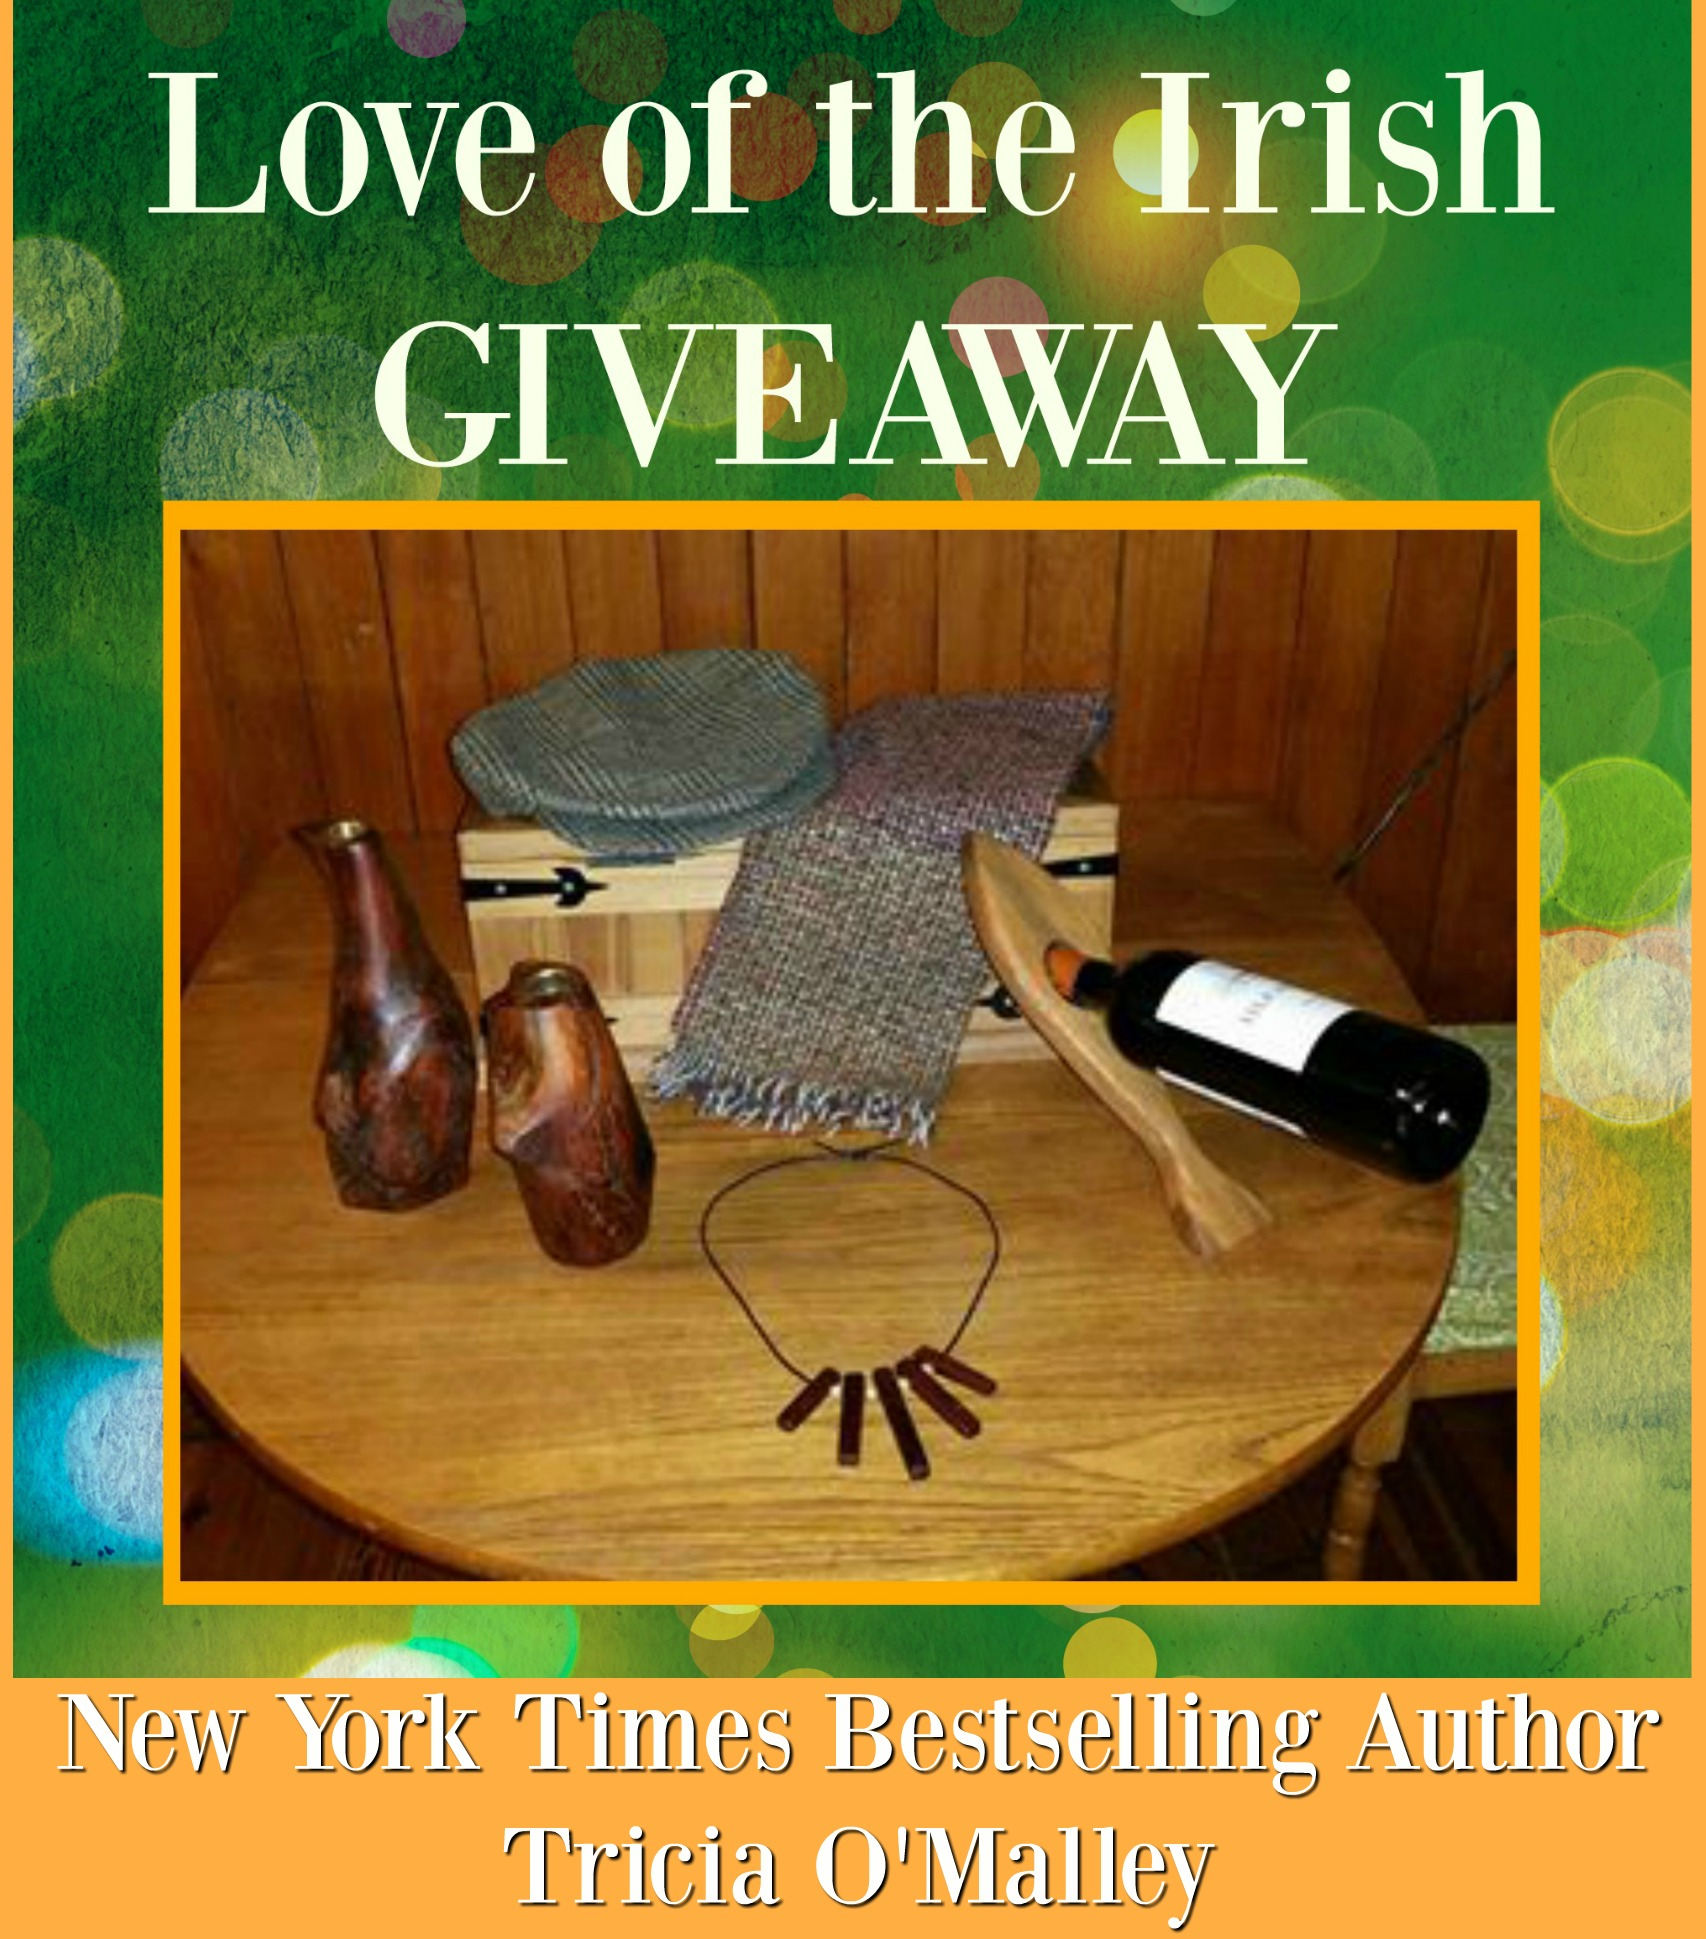 love of the irish giveaway 2.jpg